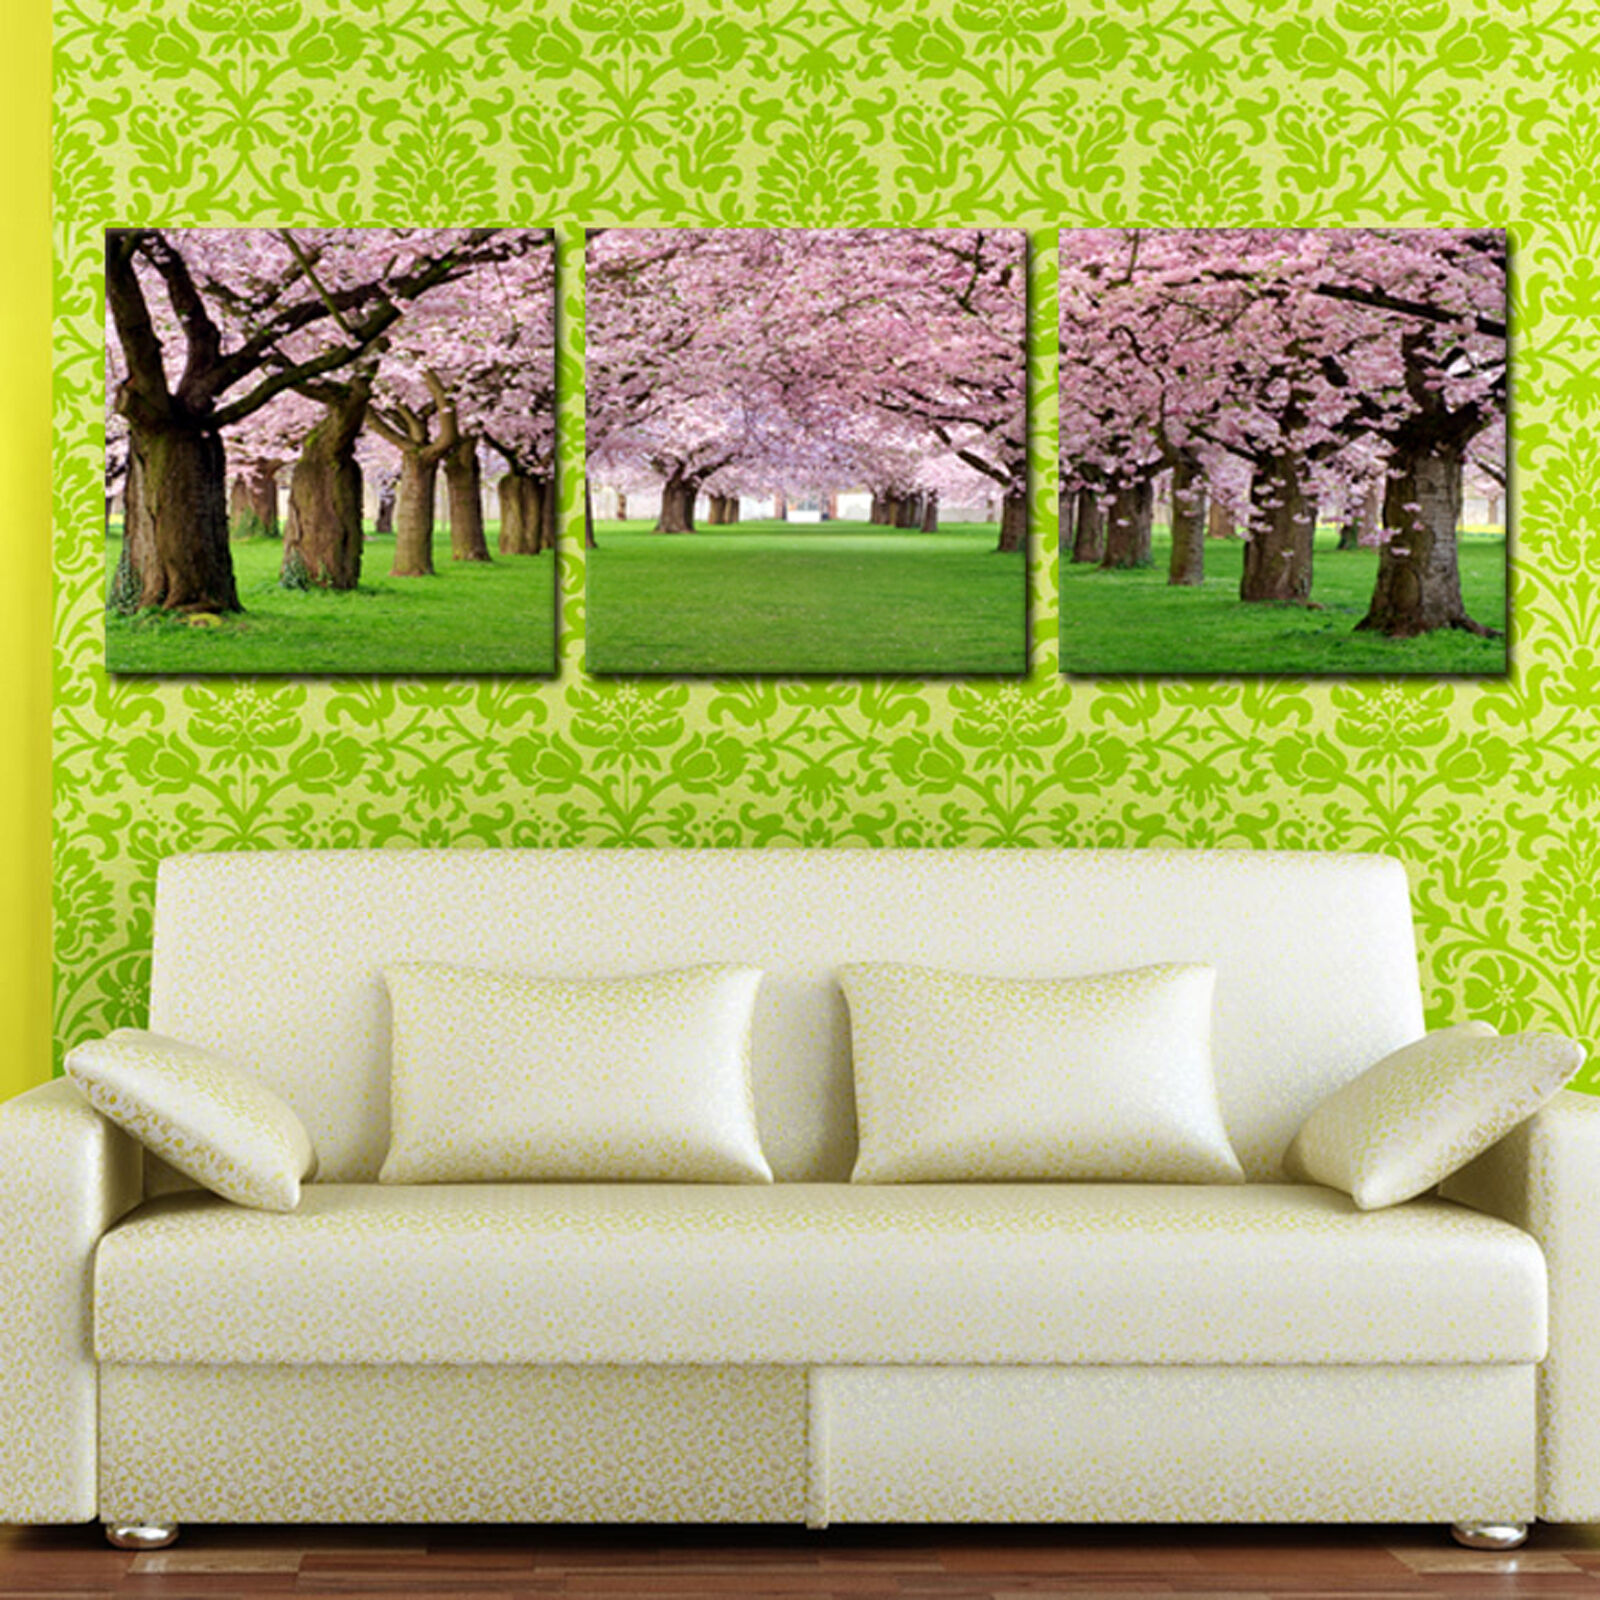 CHERRY BLOSSOM ready to hang 3 panel mounted picture betterThan stretched canvas